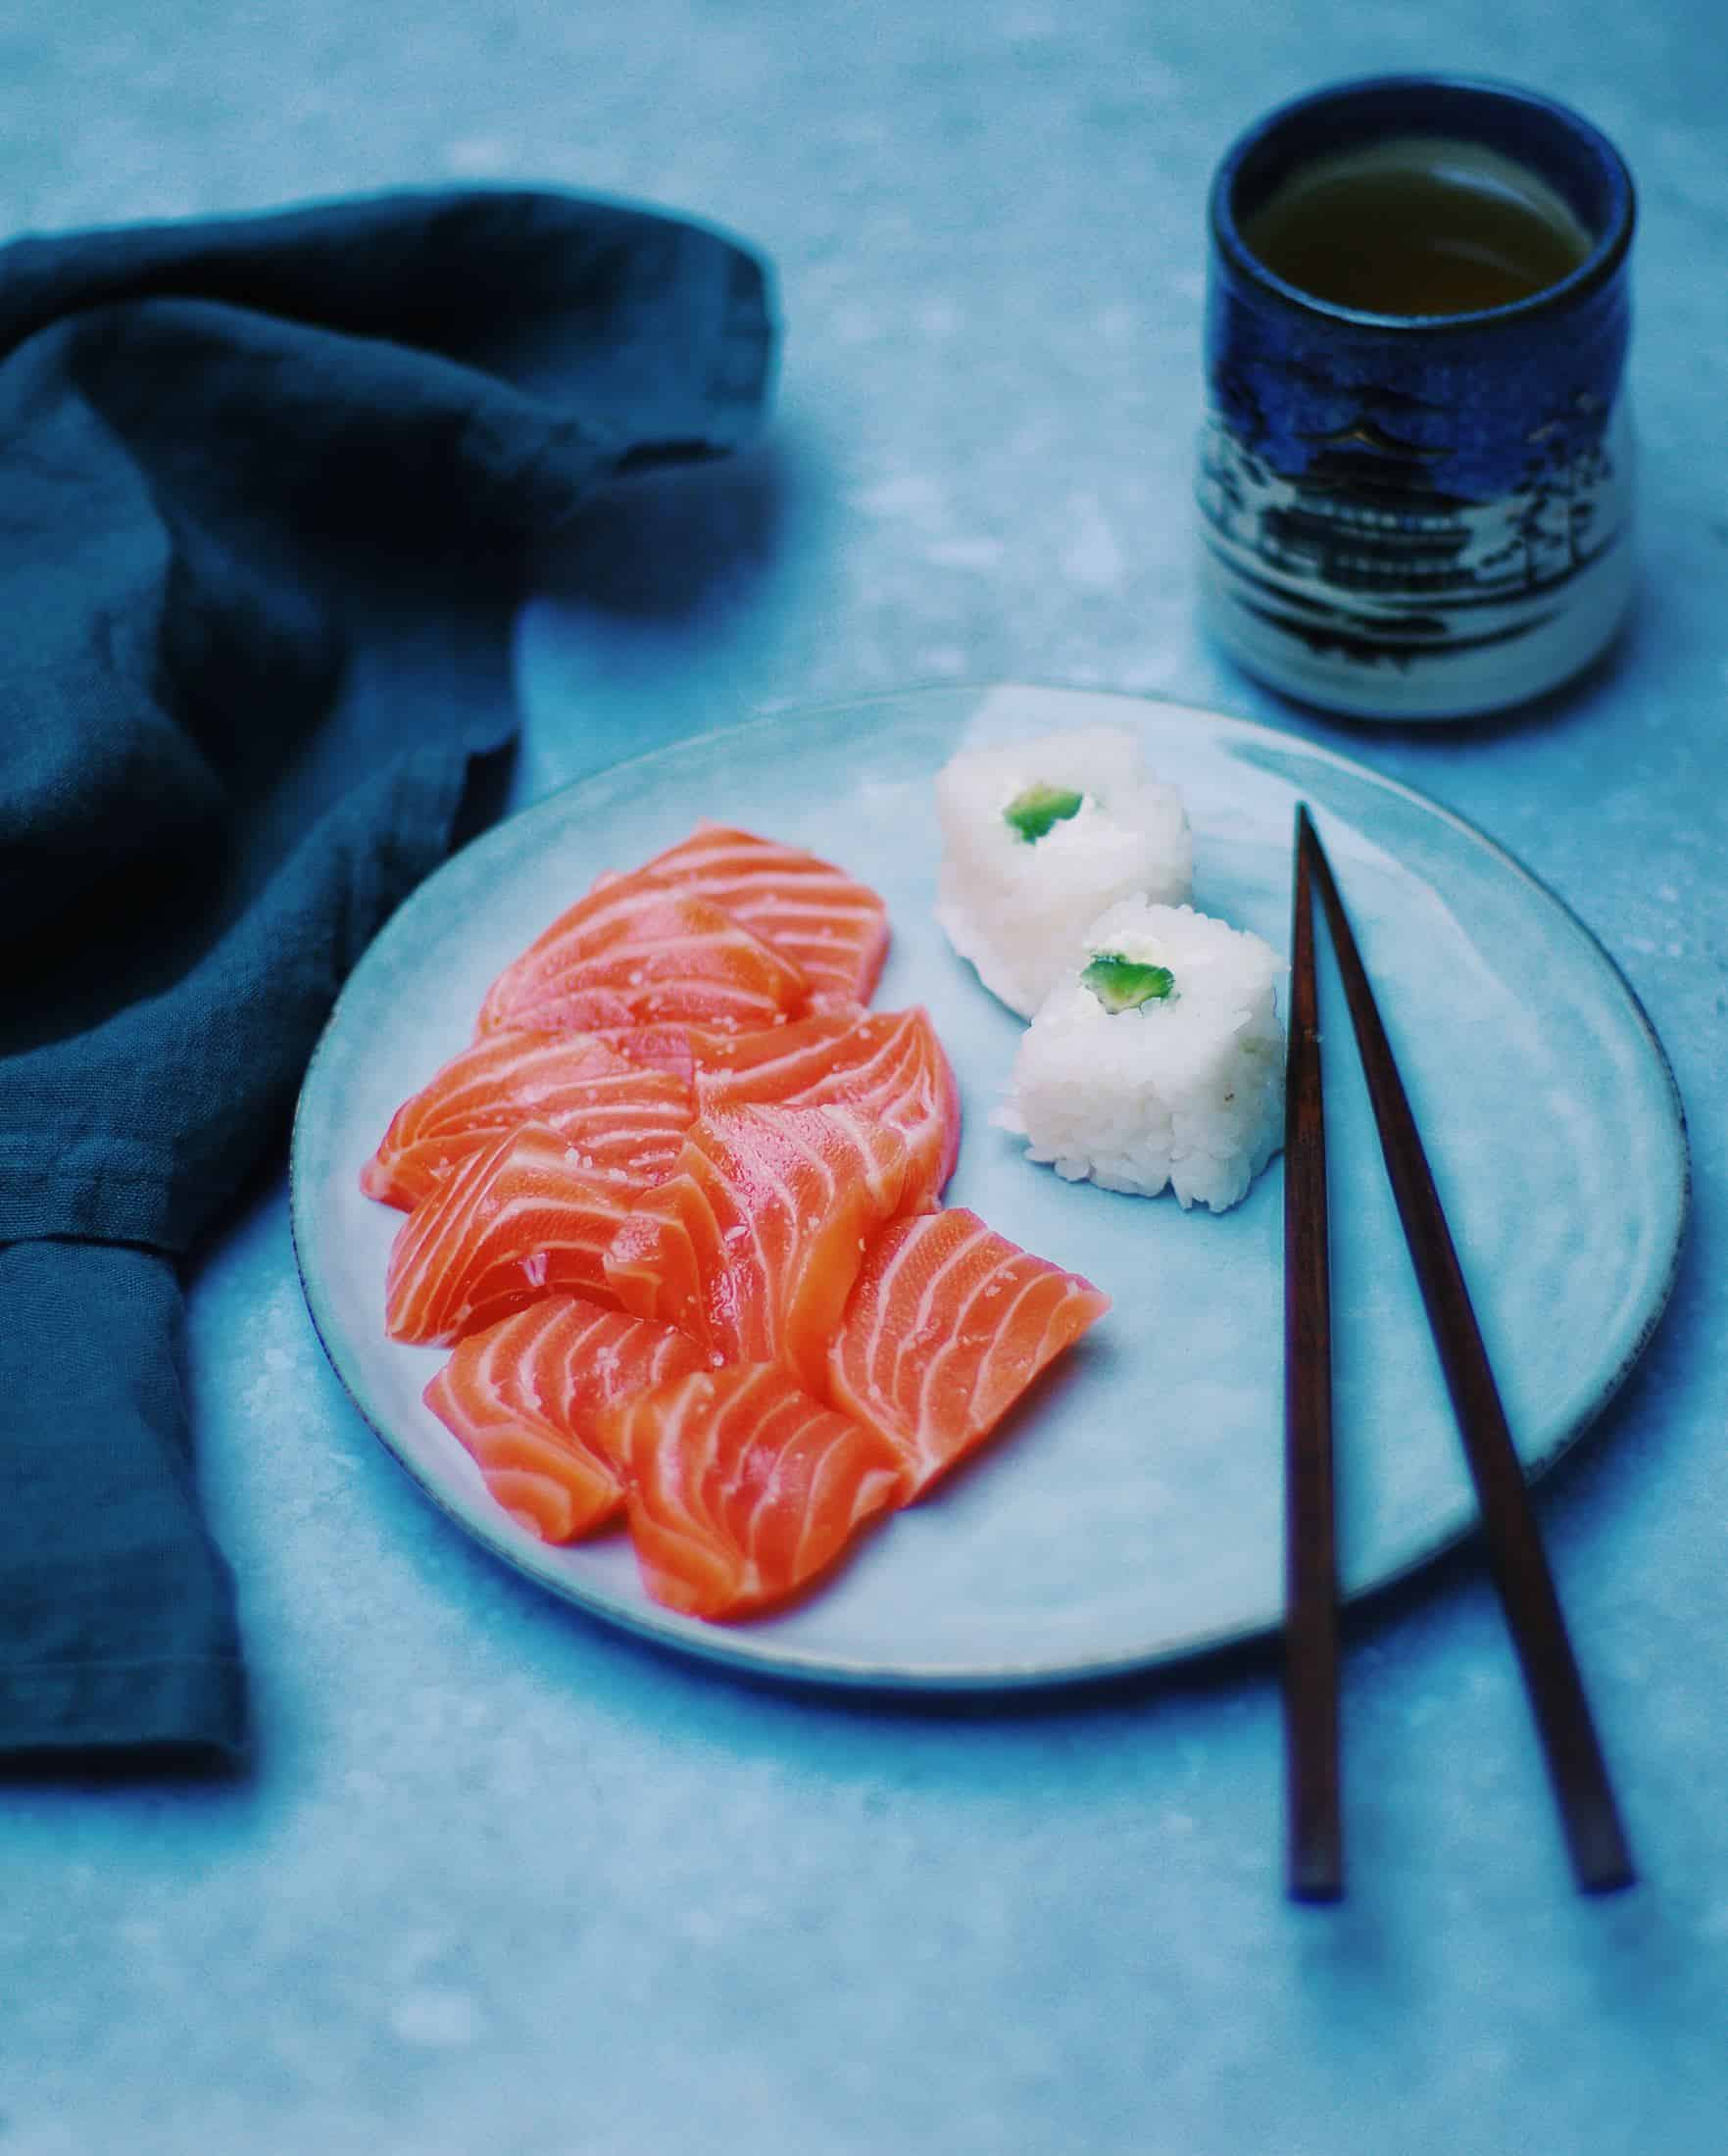 a plate of sashimi and sushi, and a glass of hot tea